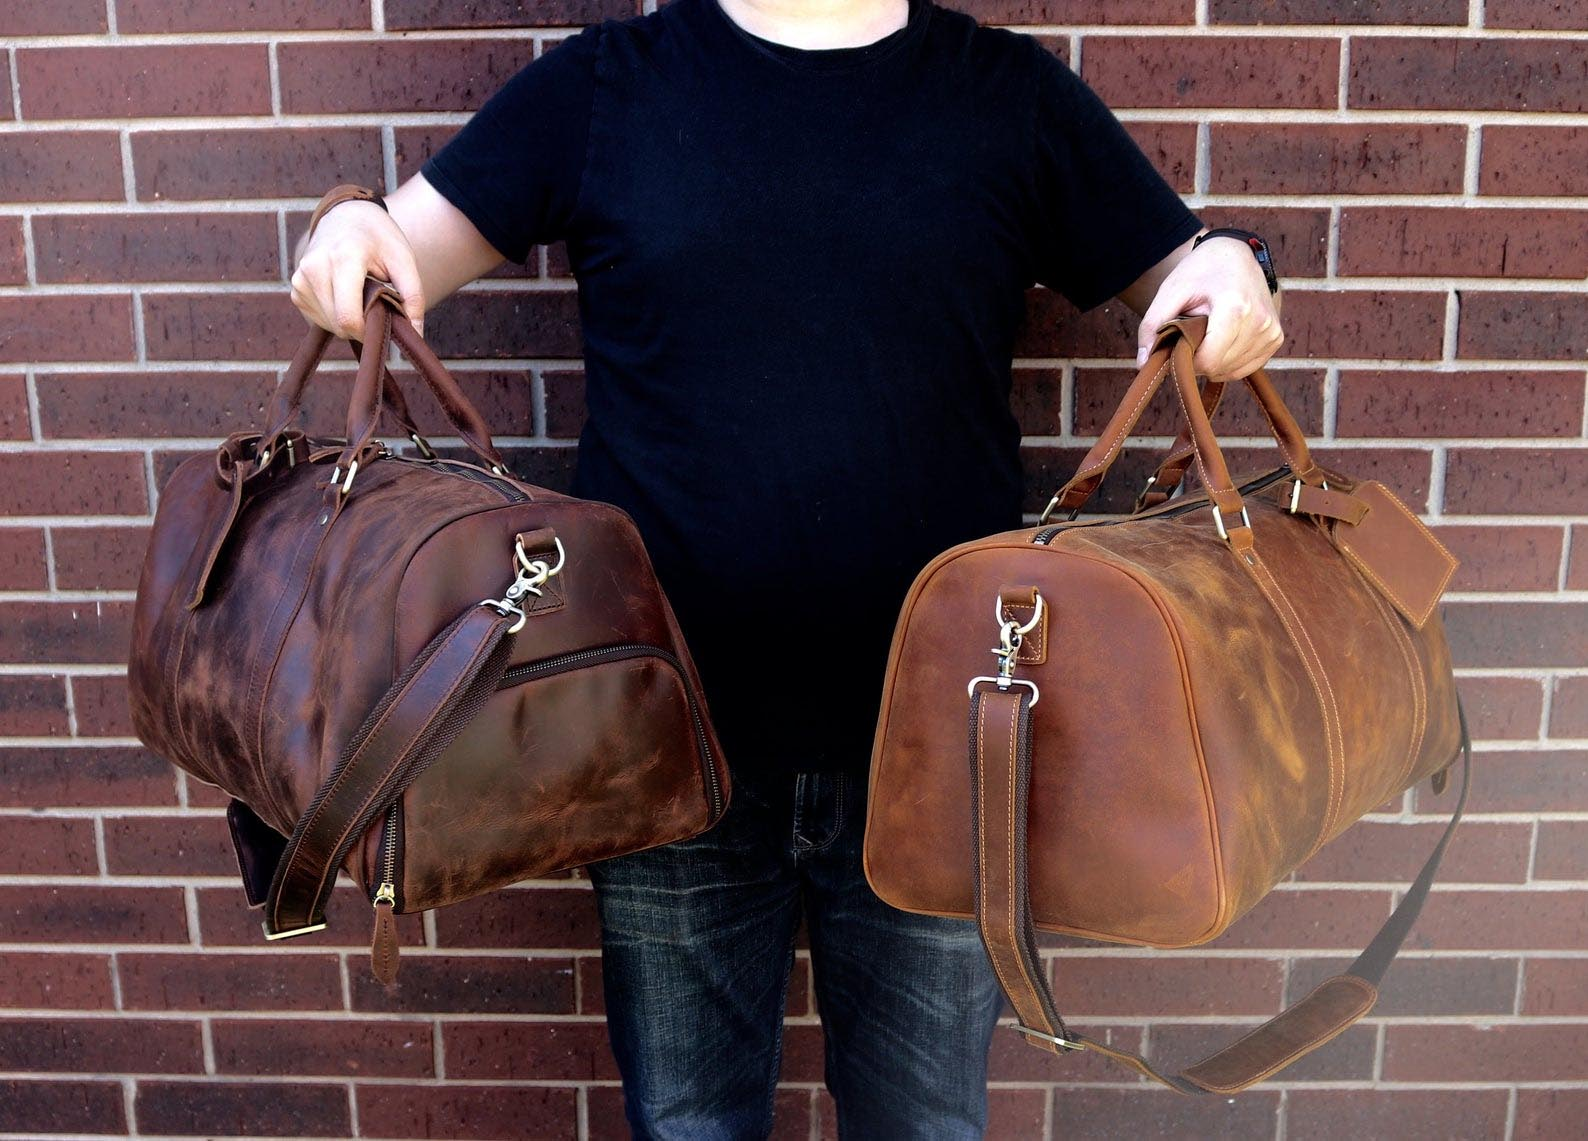 Gift Idea - Leather Duffle Bag